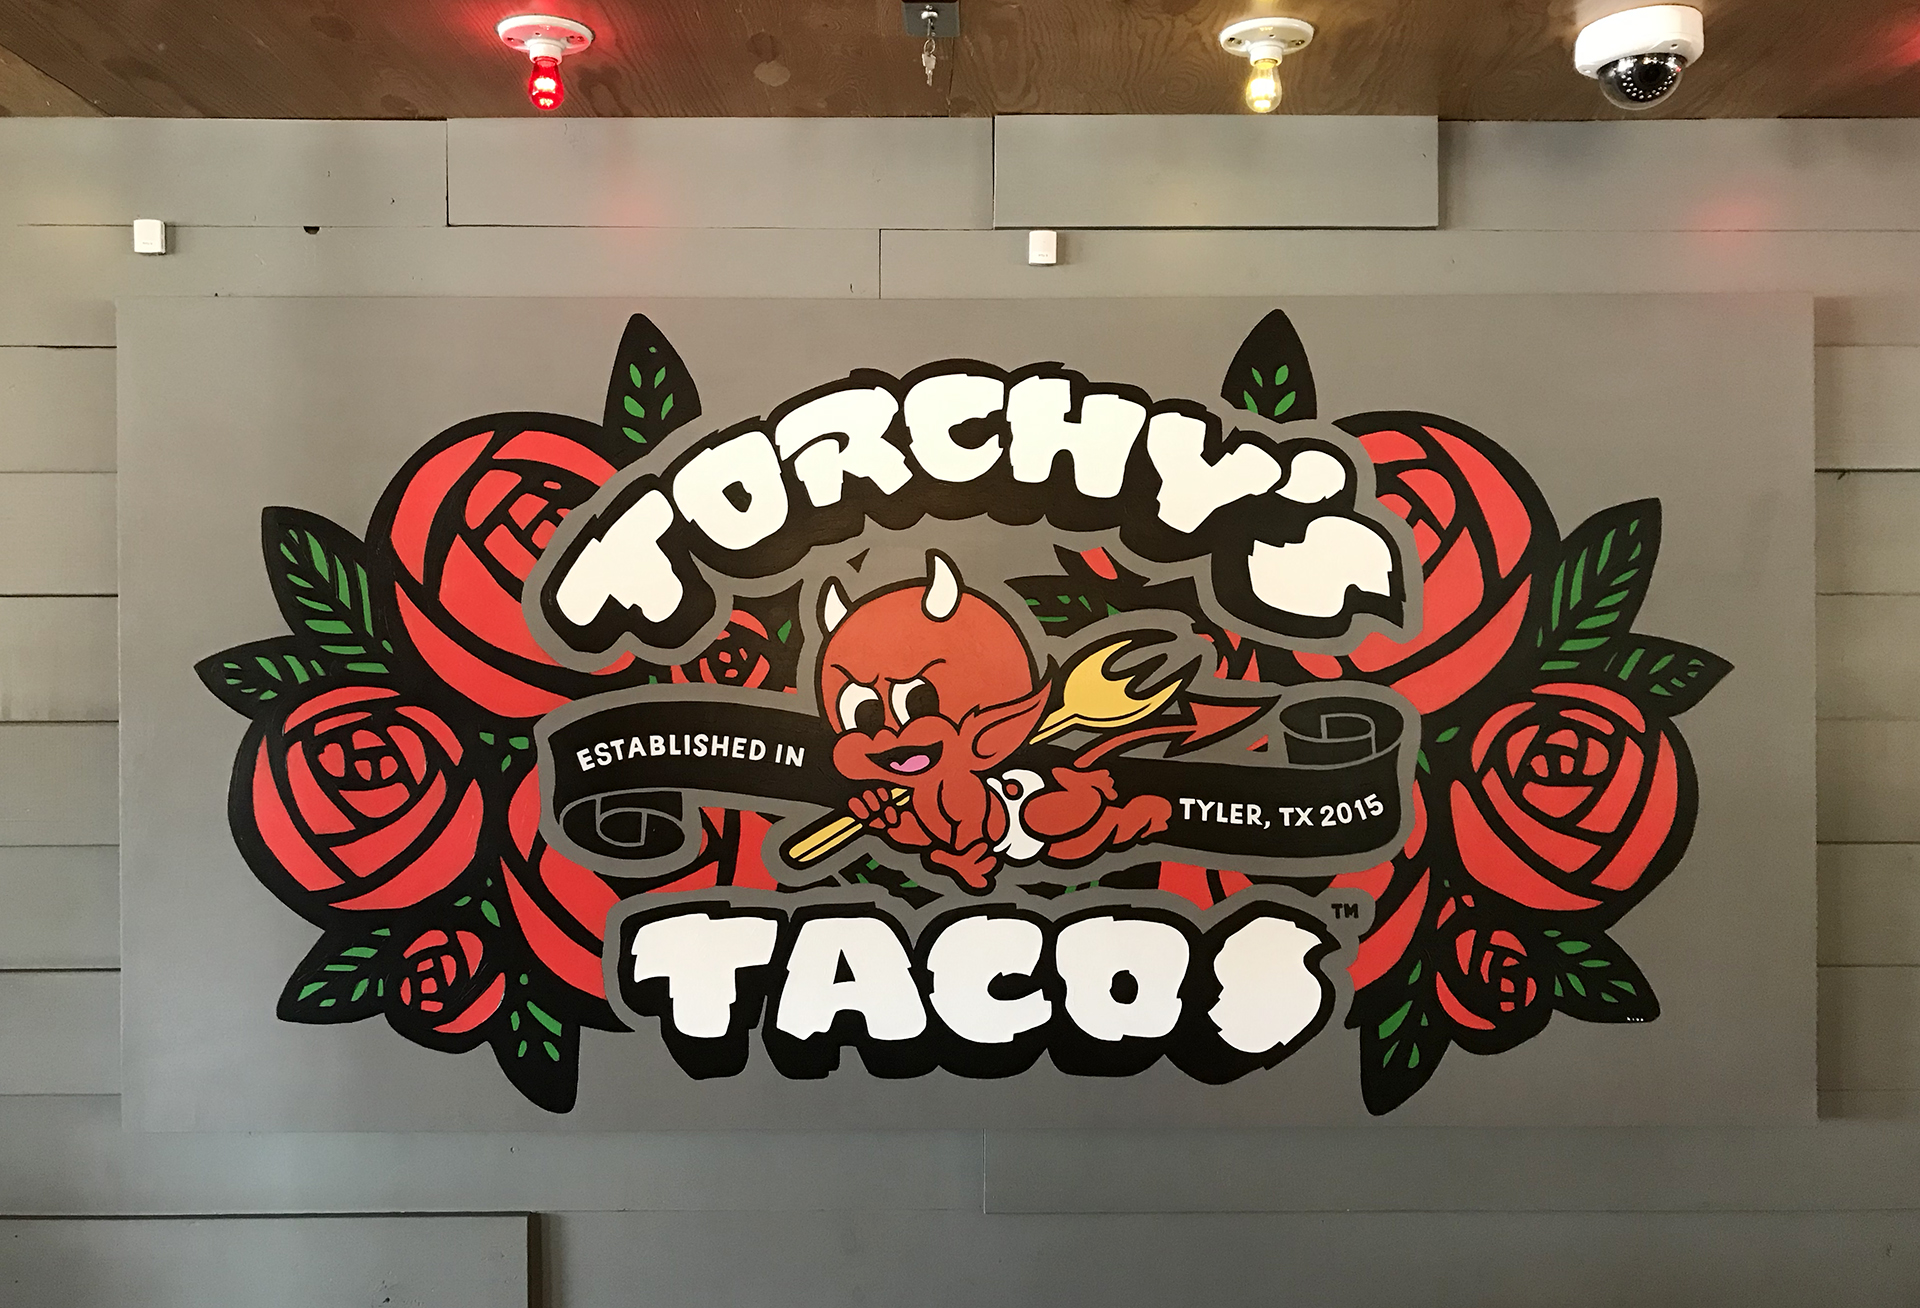 Torchy's Tacos - tacos - margaritas - window painting - Dace Kidd - Mural Artist Tx